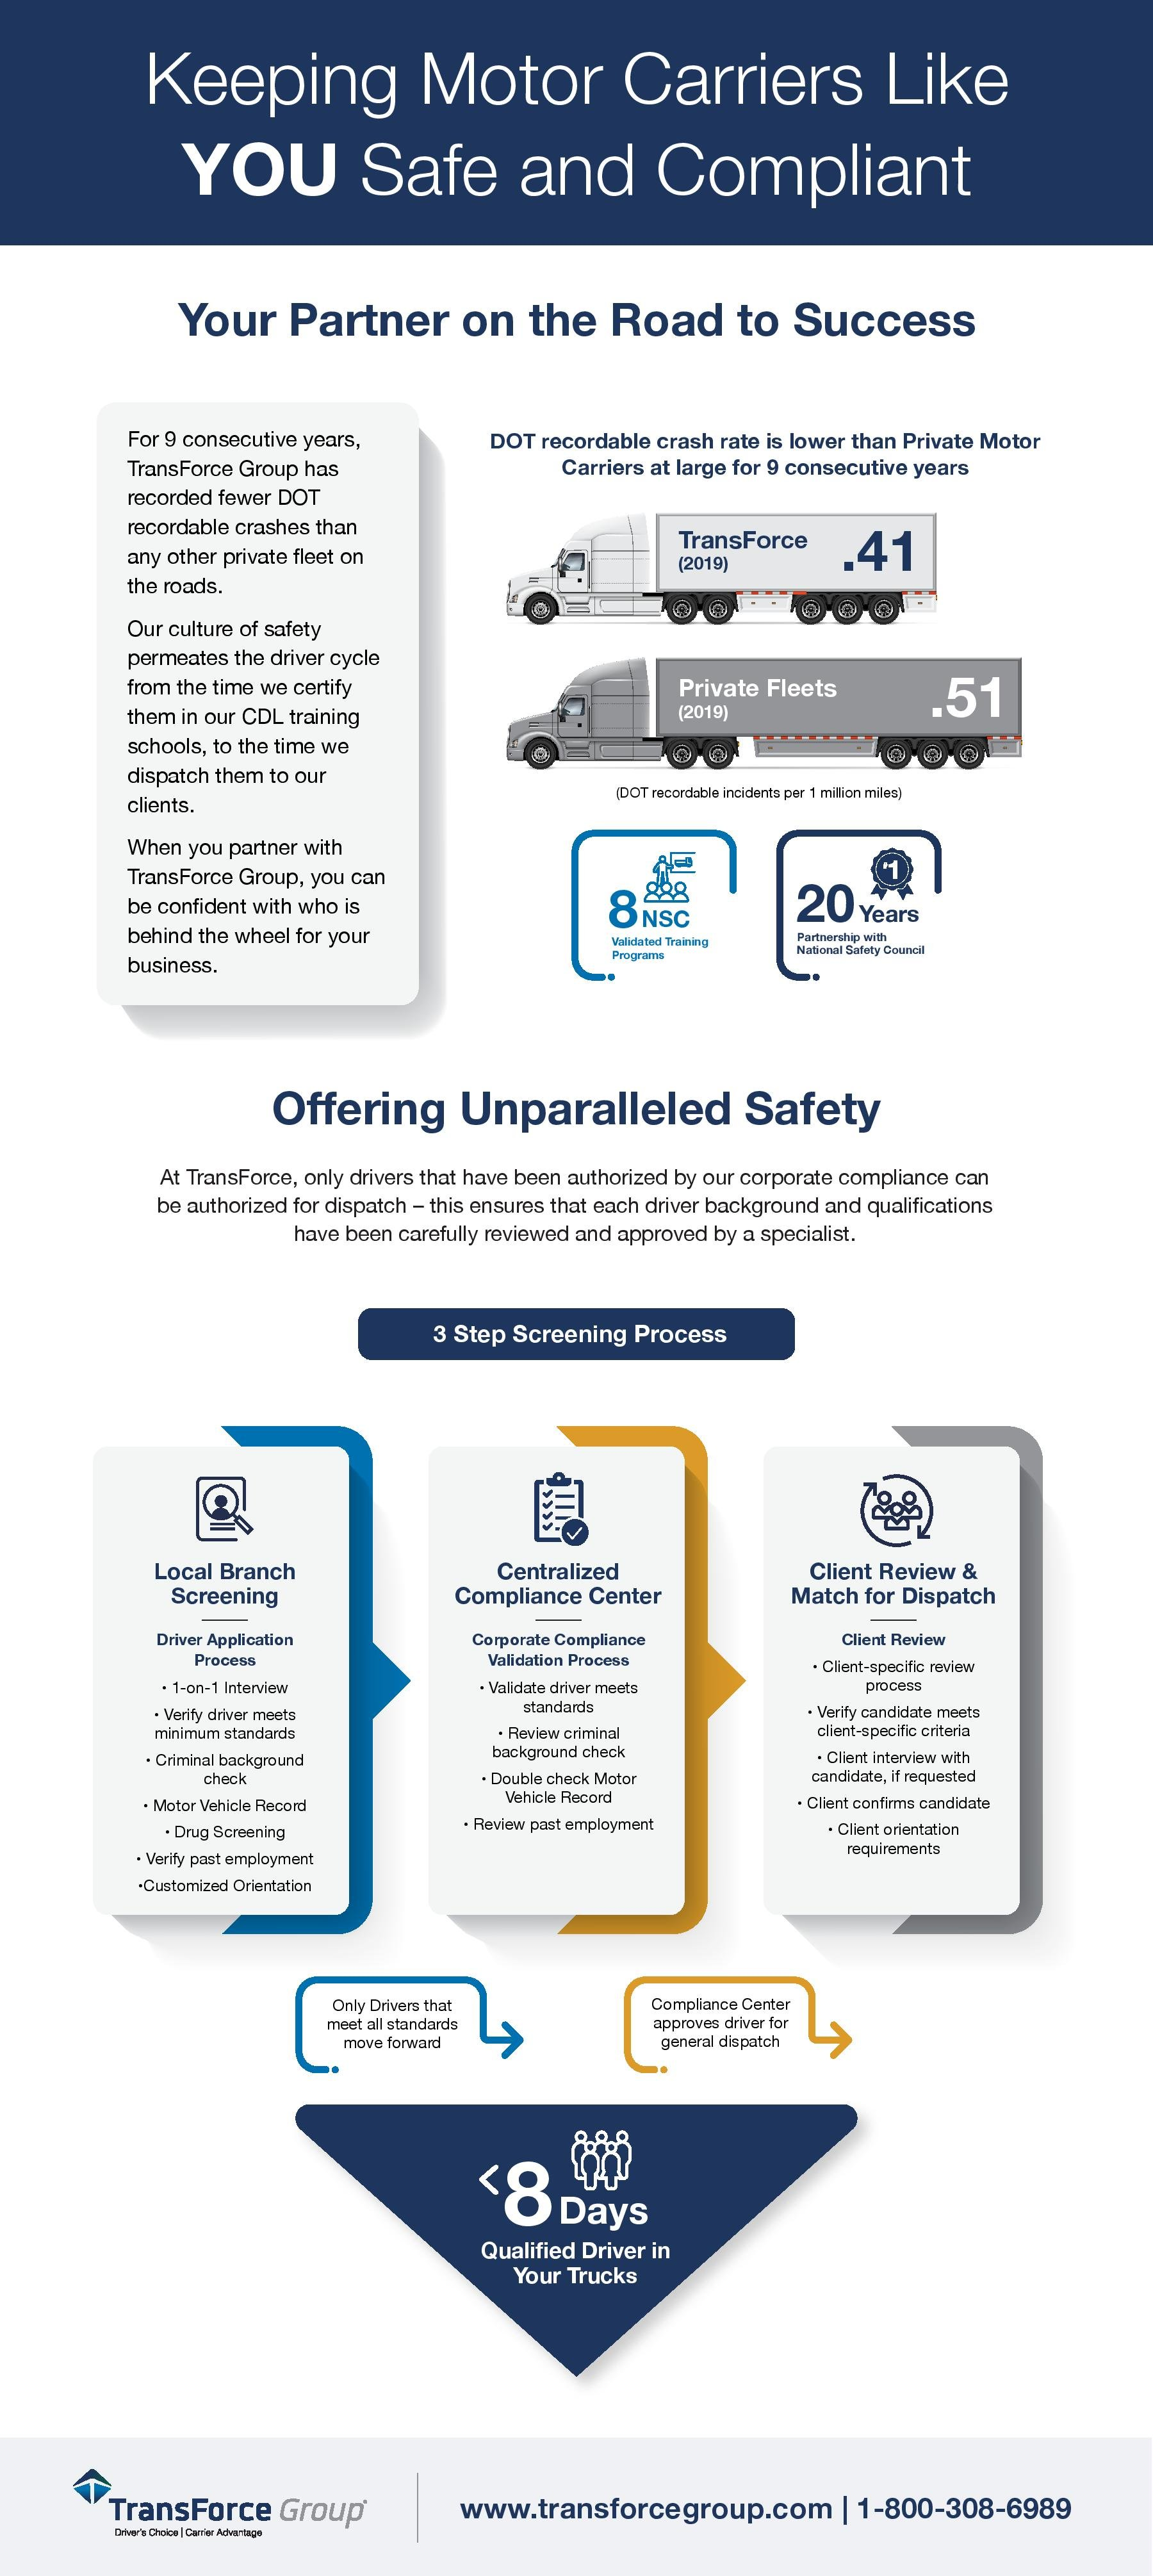 Keeping motor carriers like you safe and compliant